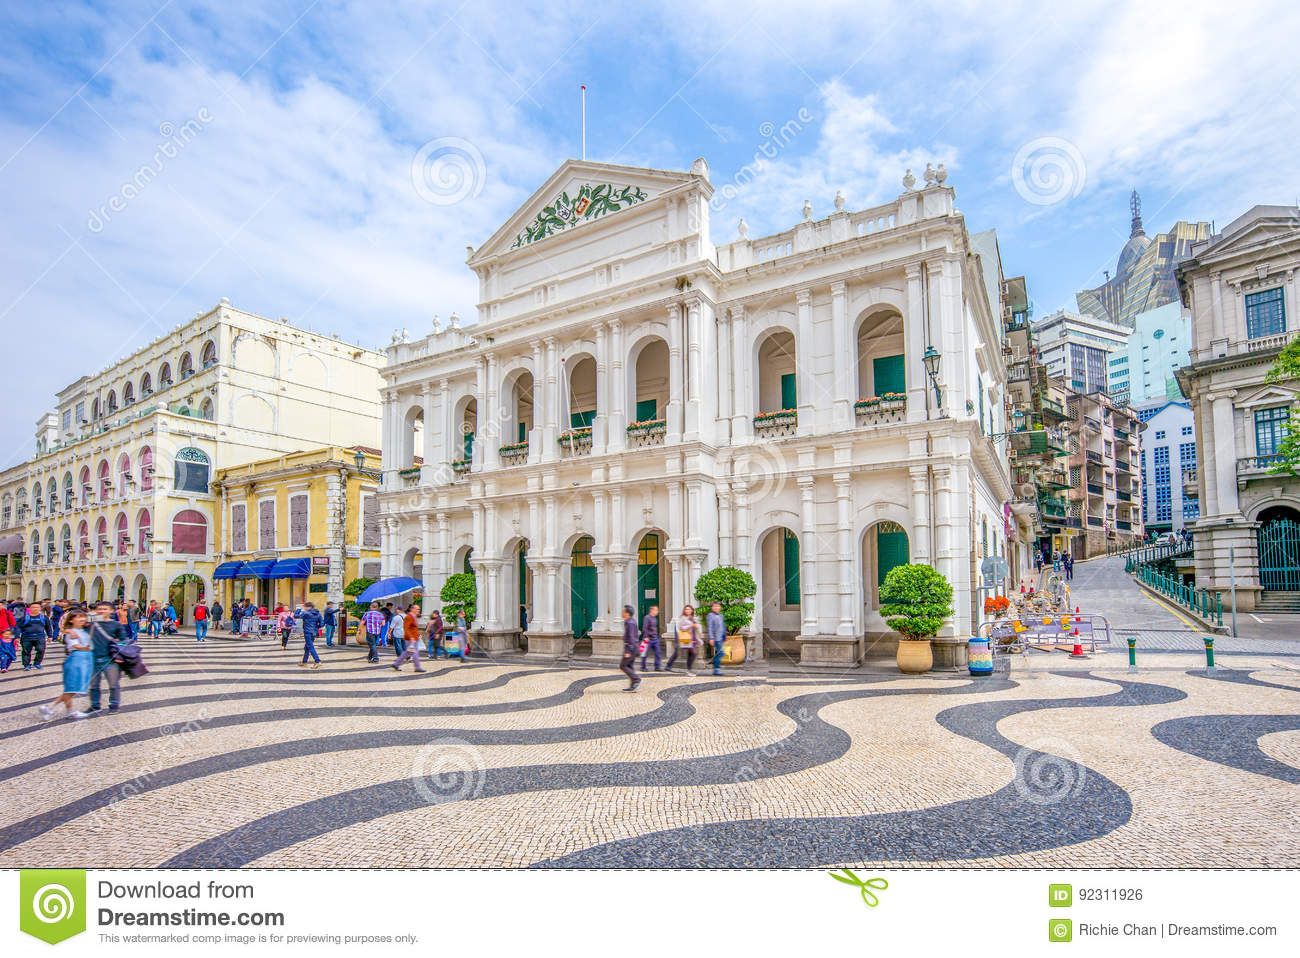 Macau Holy House of Mercy